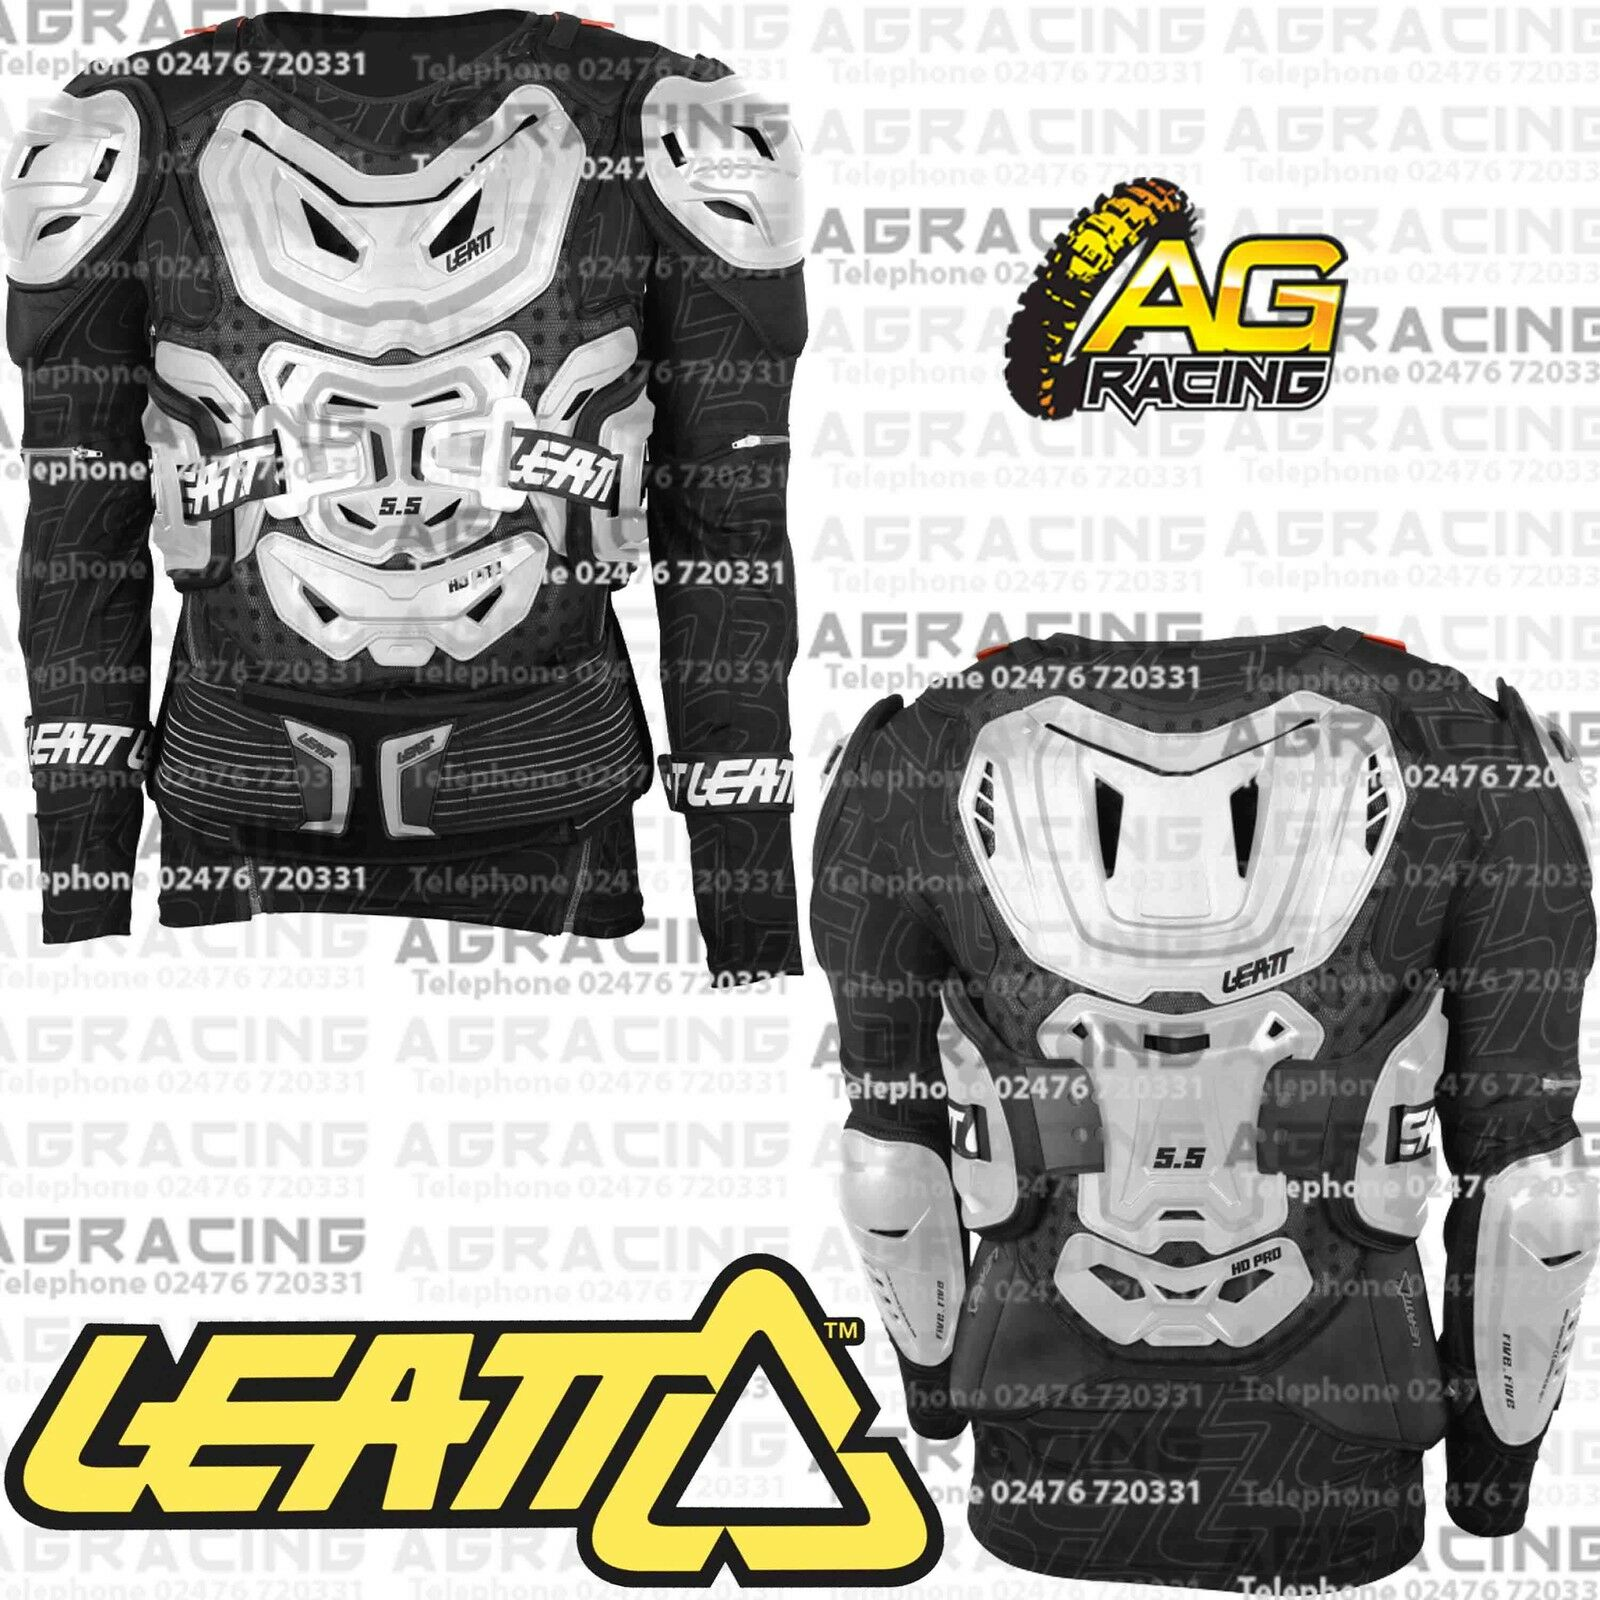 LEATT BODY PROTECTOR 5.5 ADULT ARMOUR PRESSURE SUIT WHITE MX MOTOCROSS ENDURO